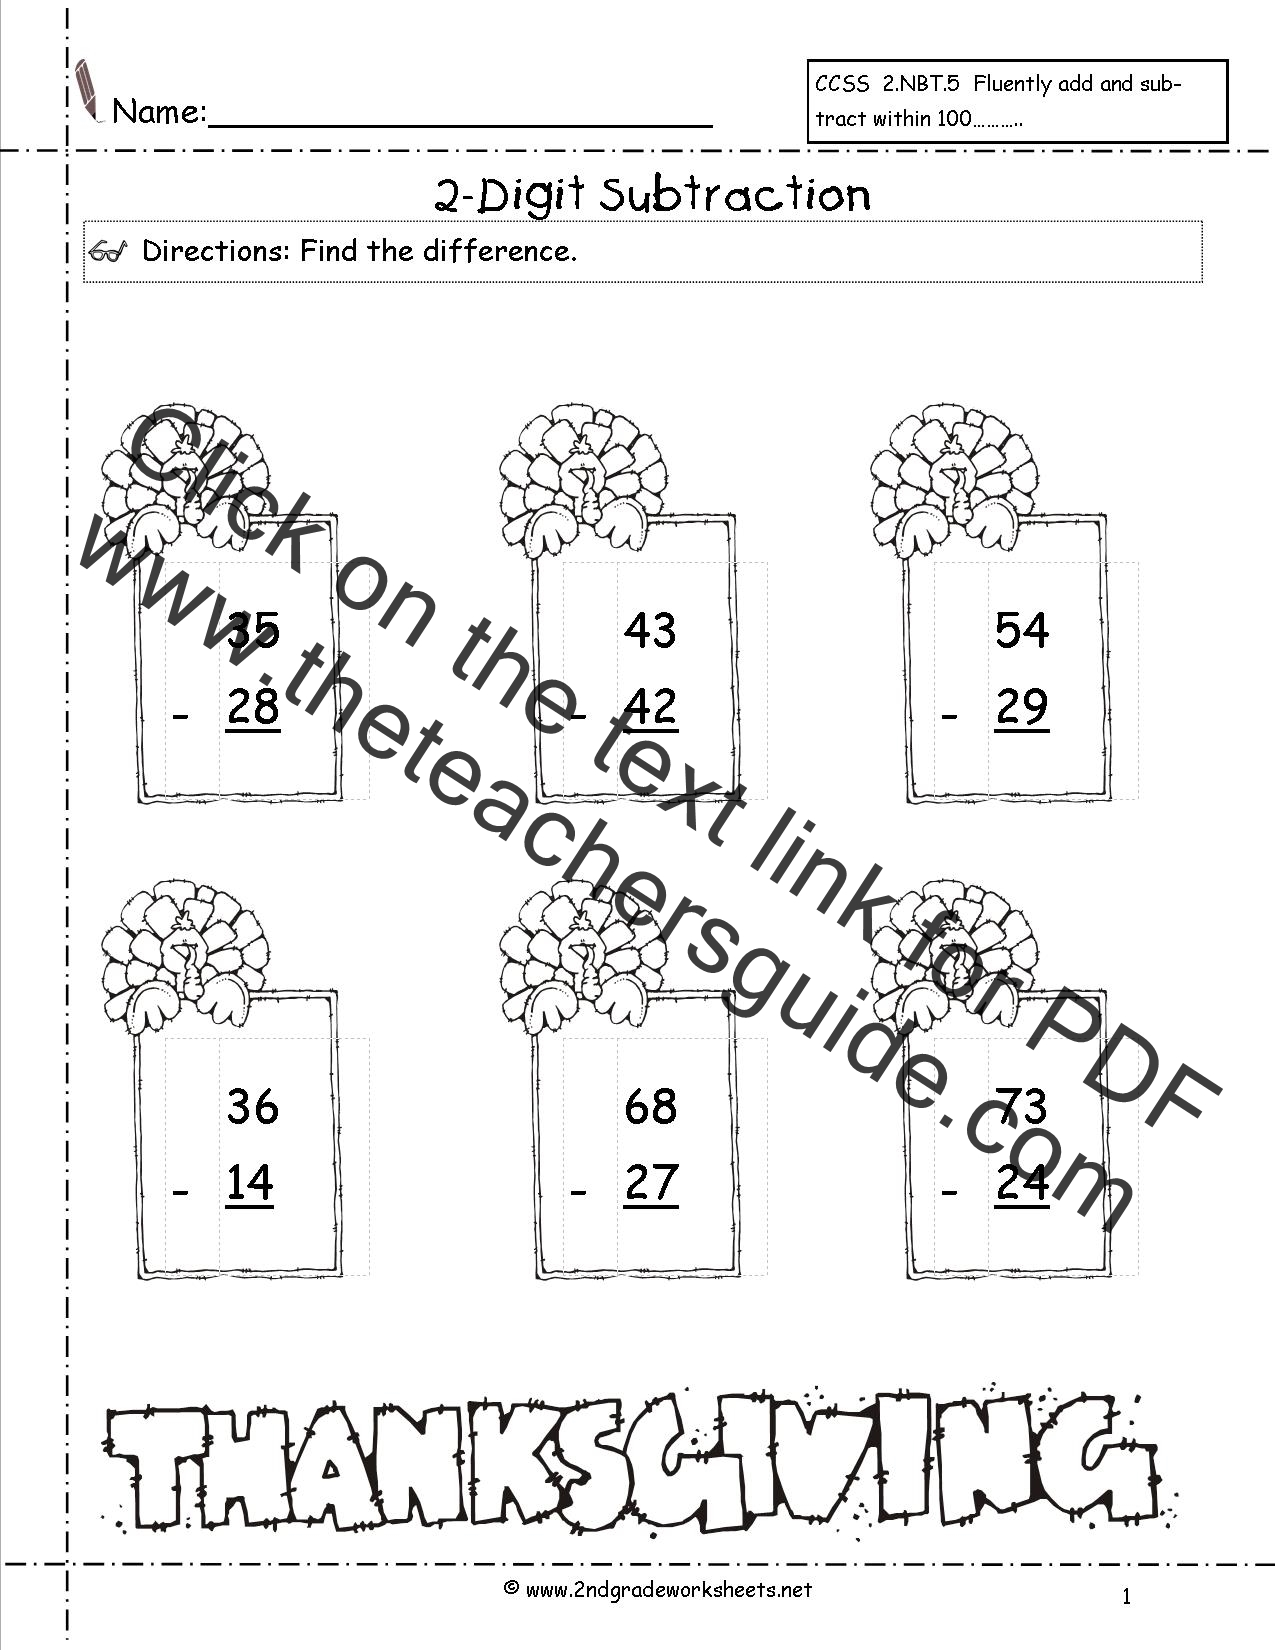 math worksheet : thanksgiving printouts and worksheets : Thanksgiving Addition And Subtraction Worksheets